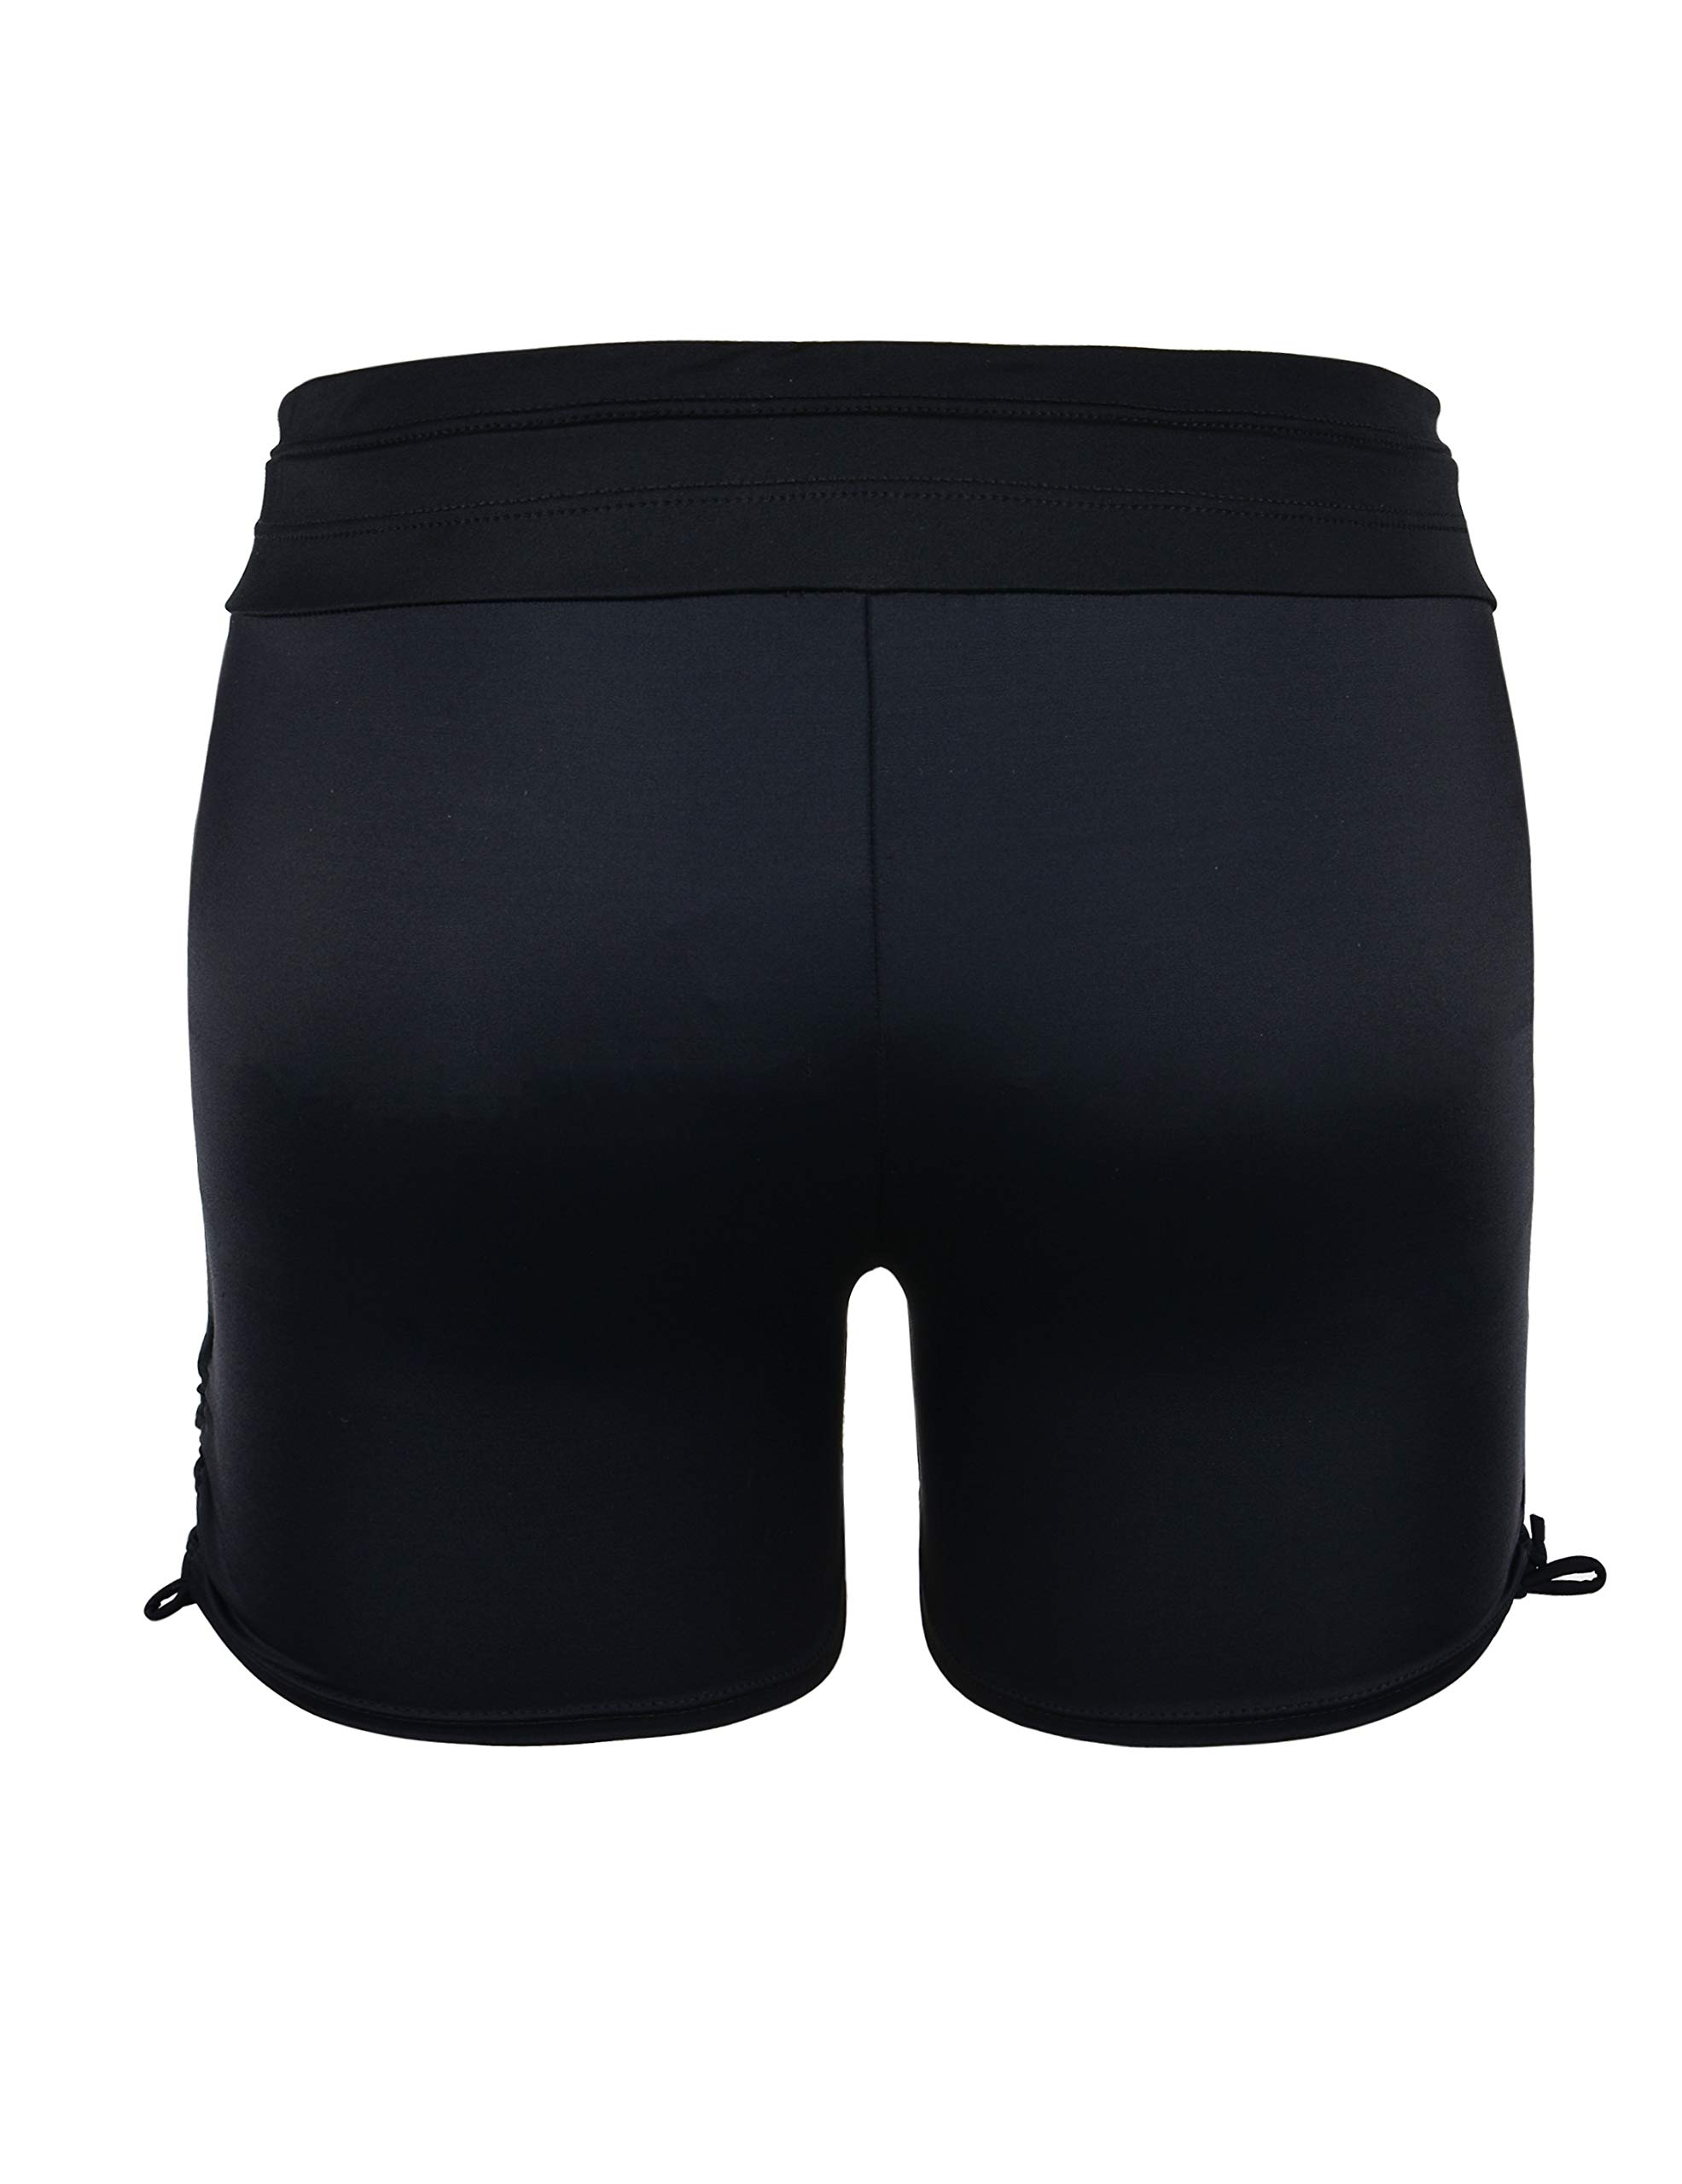 Septangle Womens Black Swim Sports Board Shorts Bottom with Side Ties,US 14 by Septangle (Image #3)